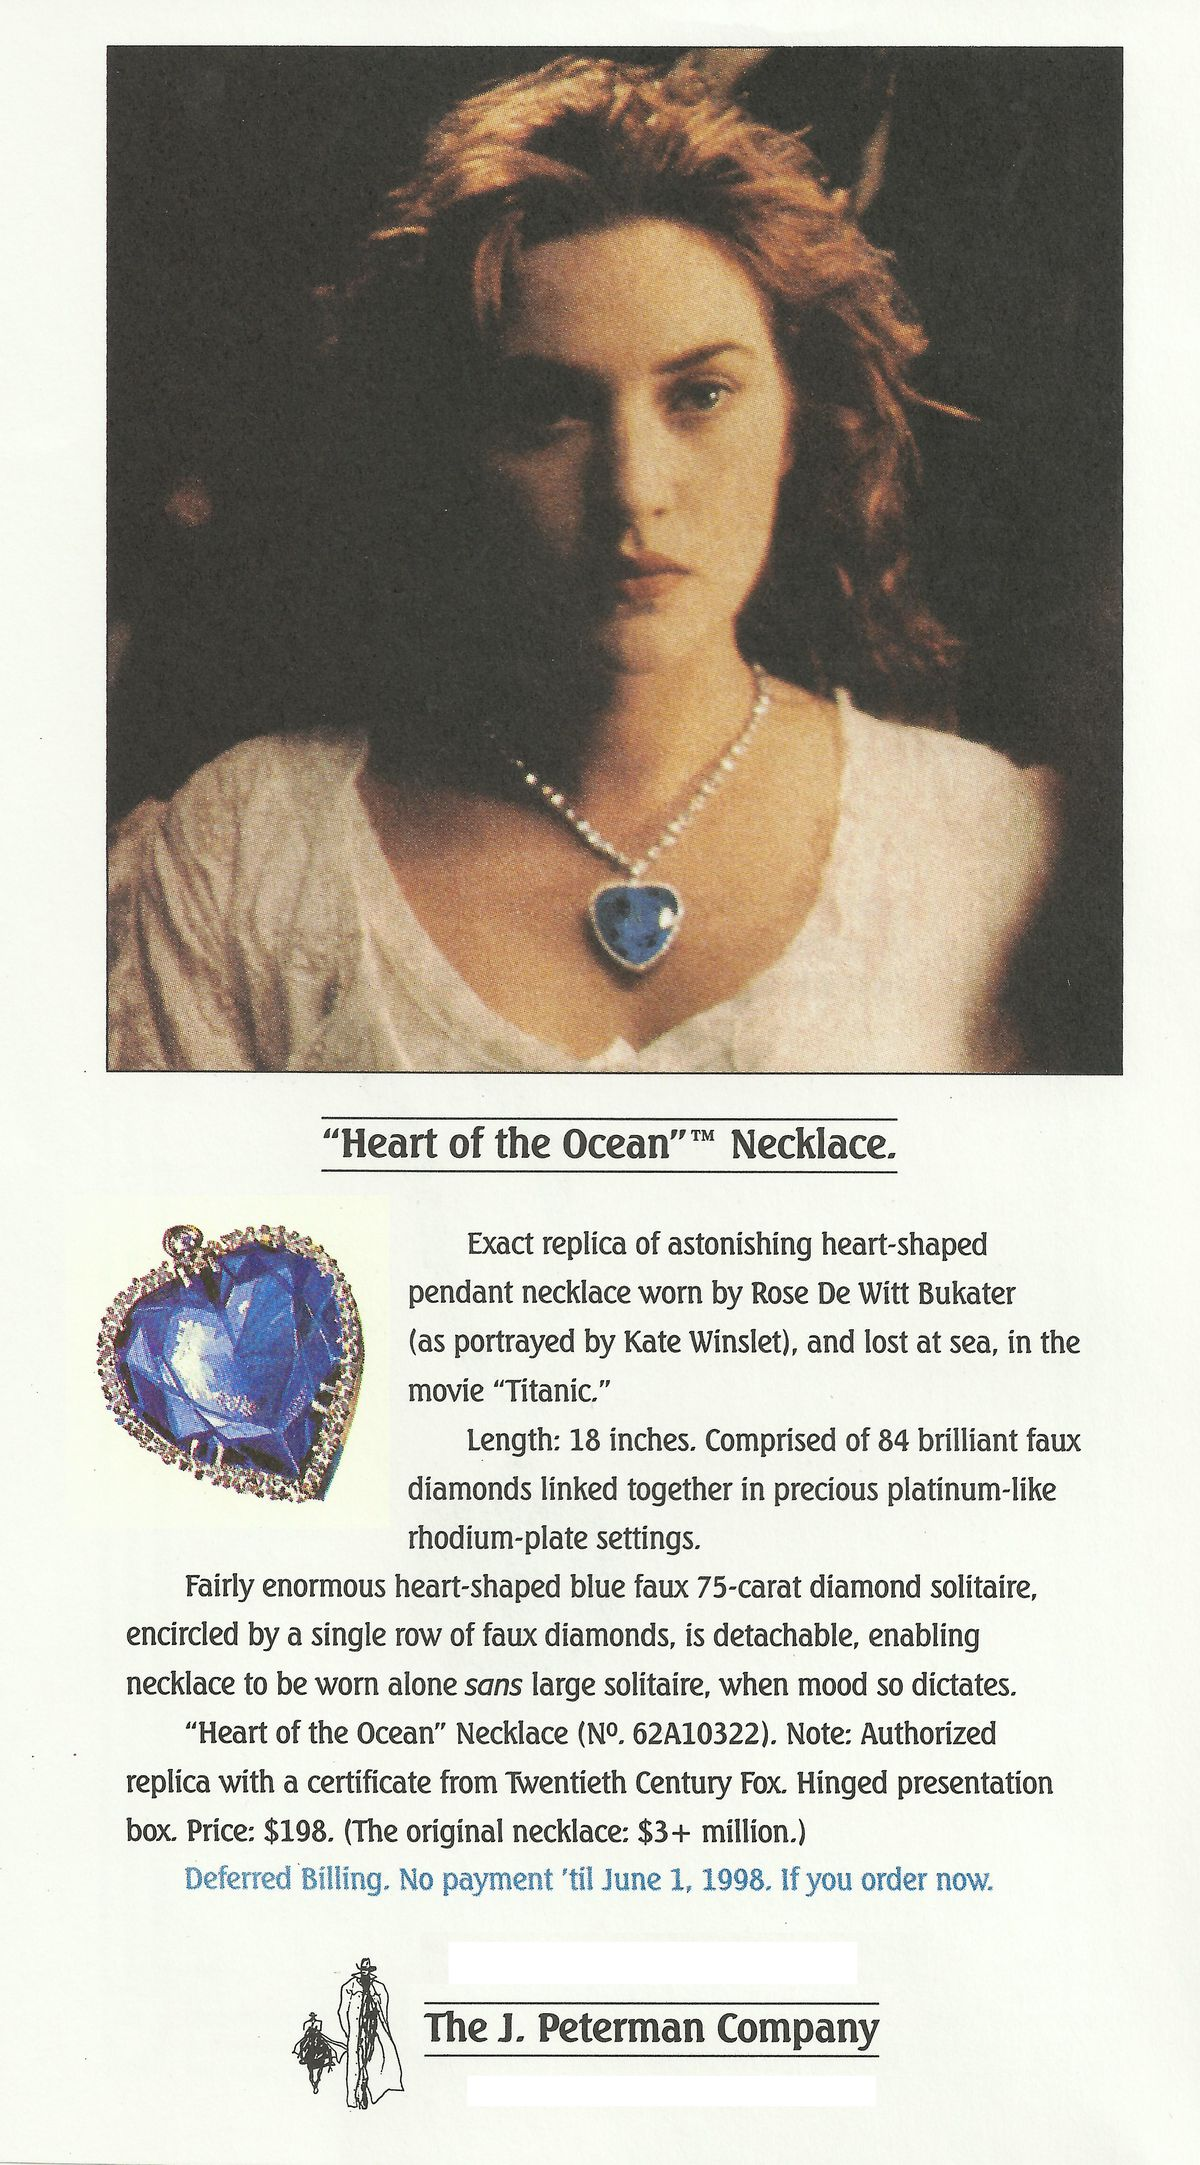 The J. Peterman Company's Heart of the Ocean reproduction, as featured in its catalog.